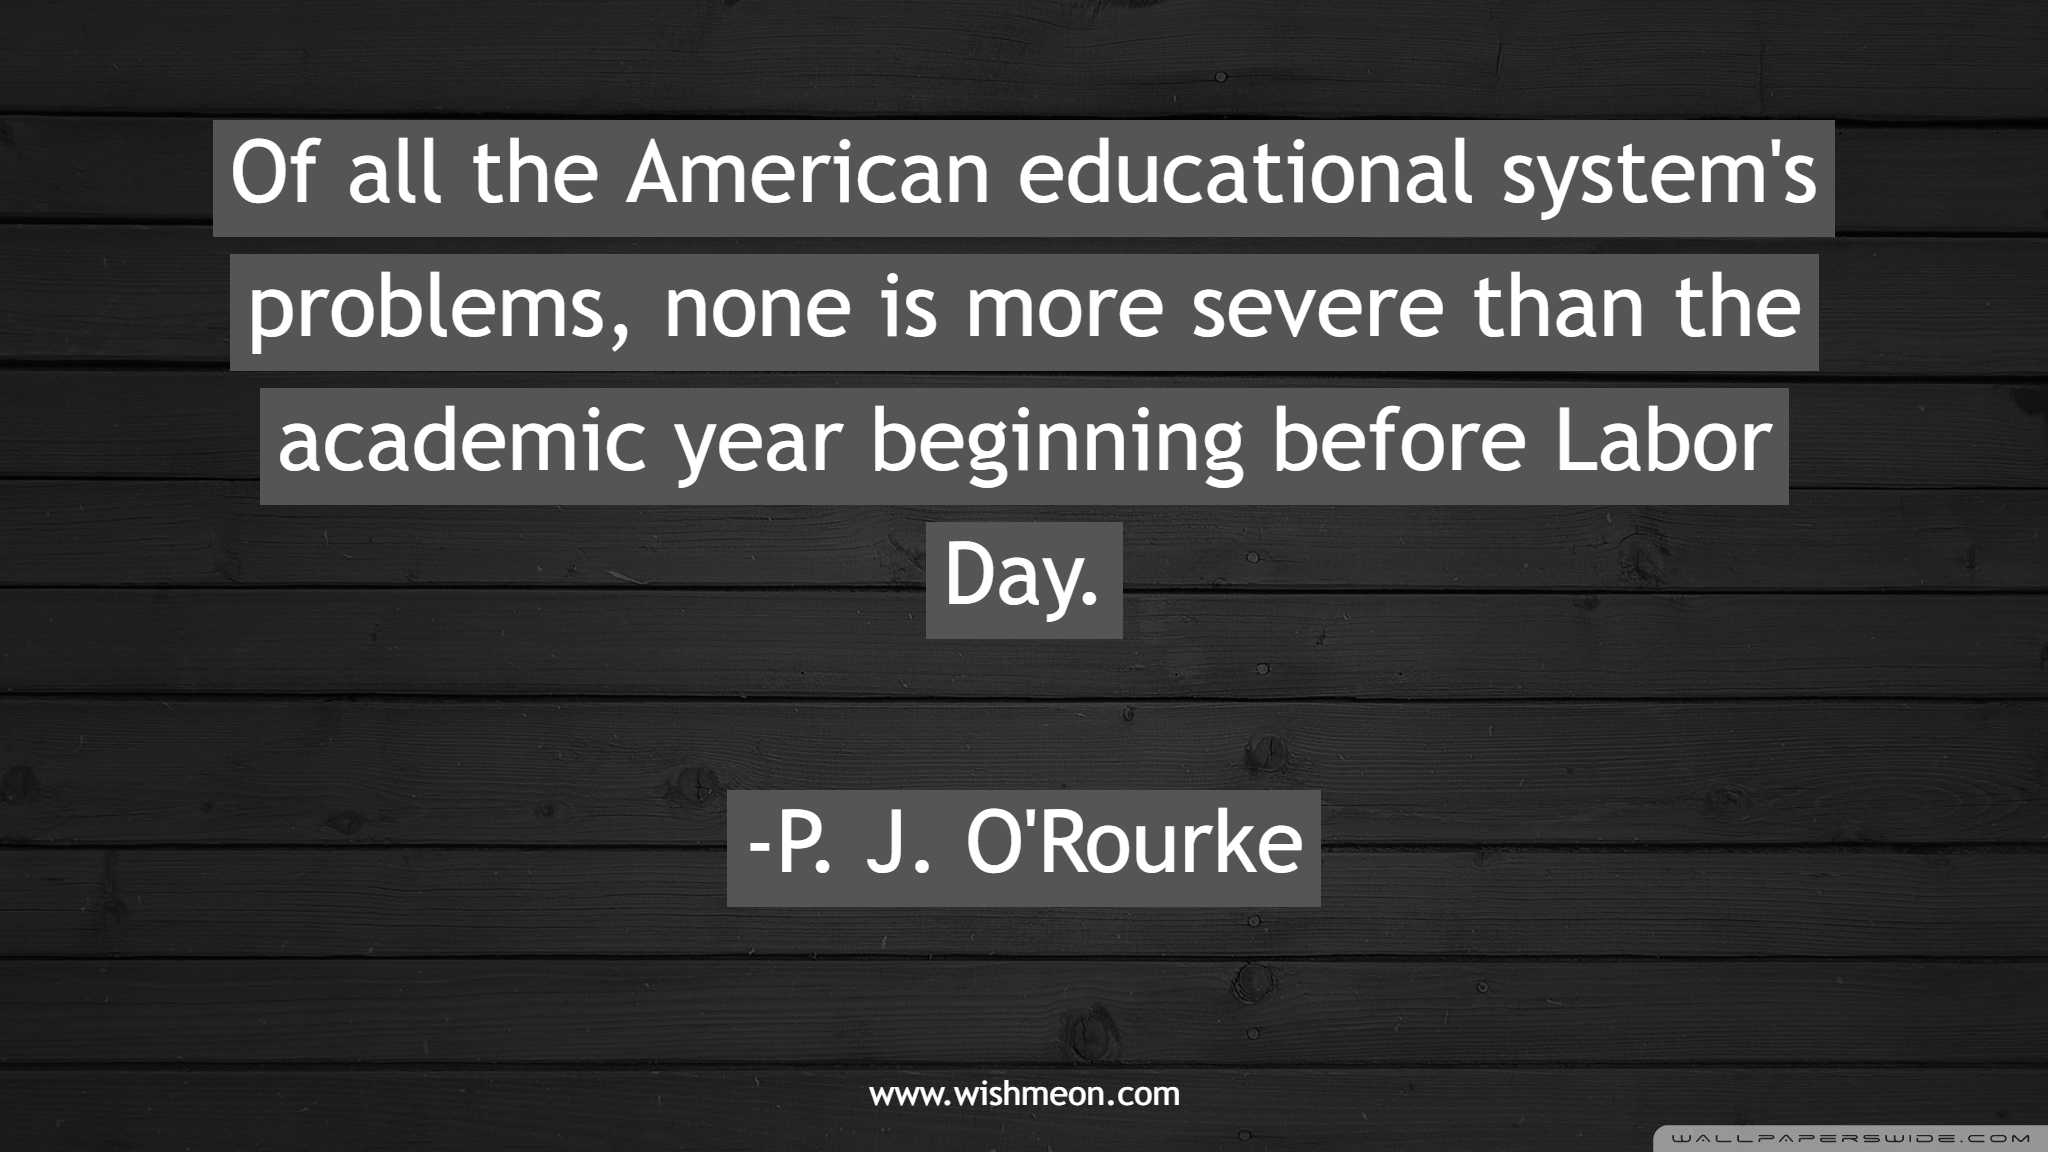 Of all the American educational system's problems, none is more severe than the academic year beginning before Labor Day. P. J. O'Rourke